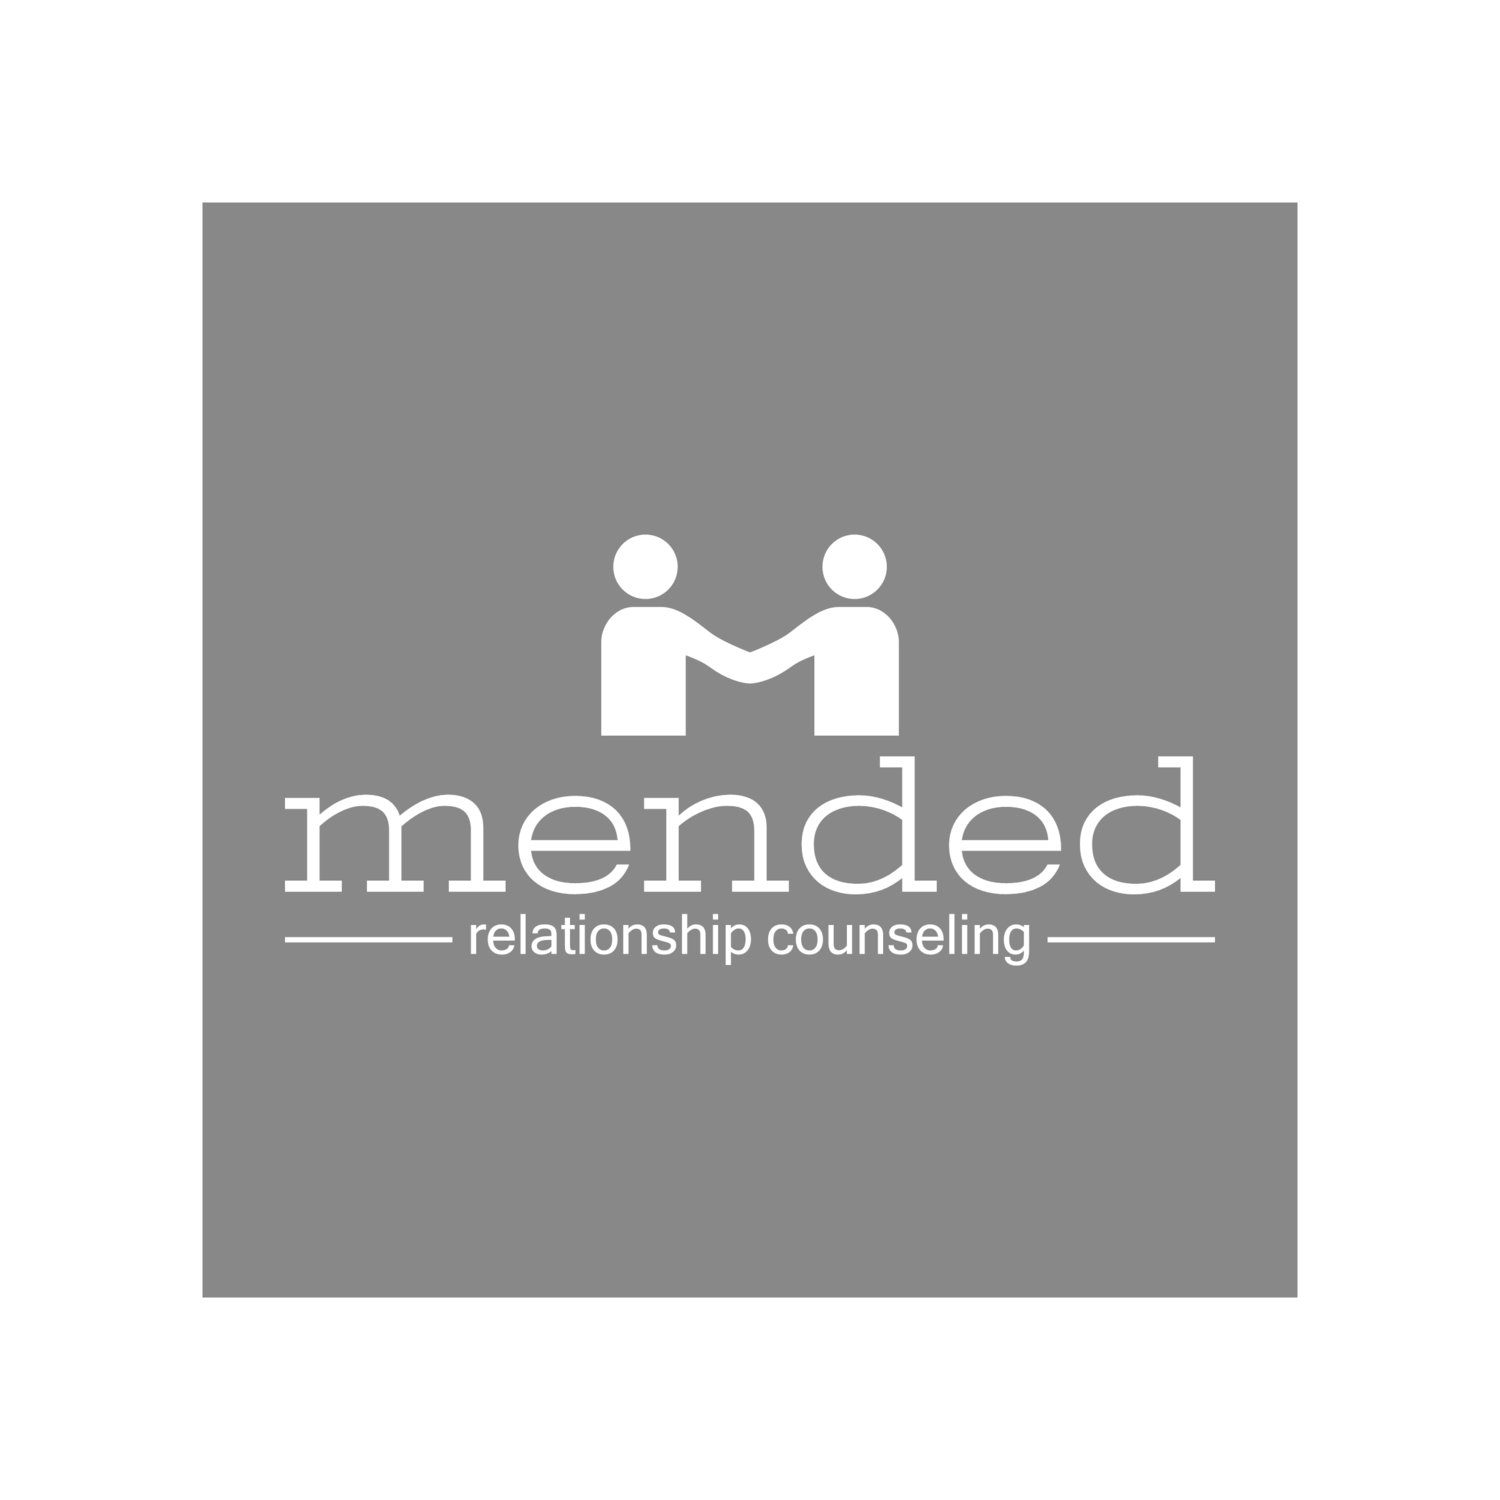 Mended relationship counseling